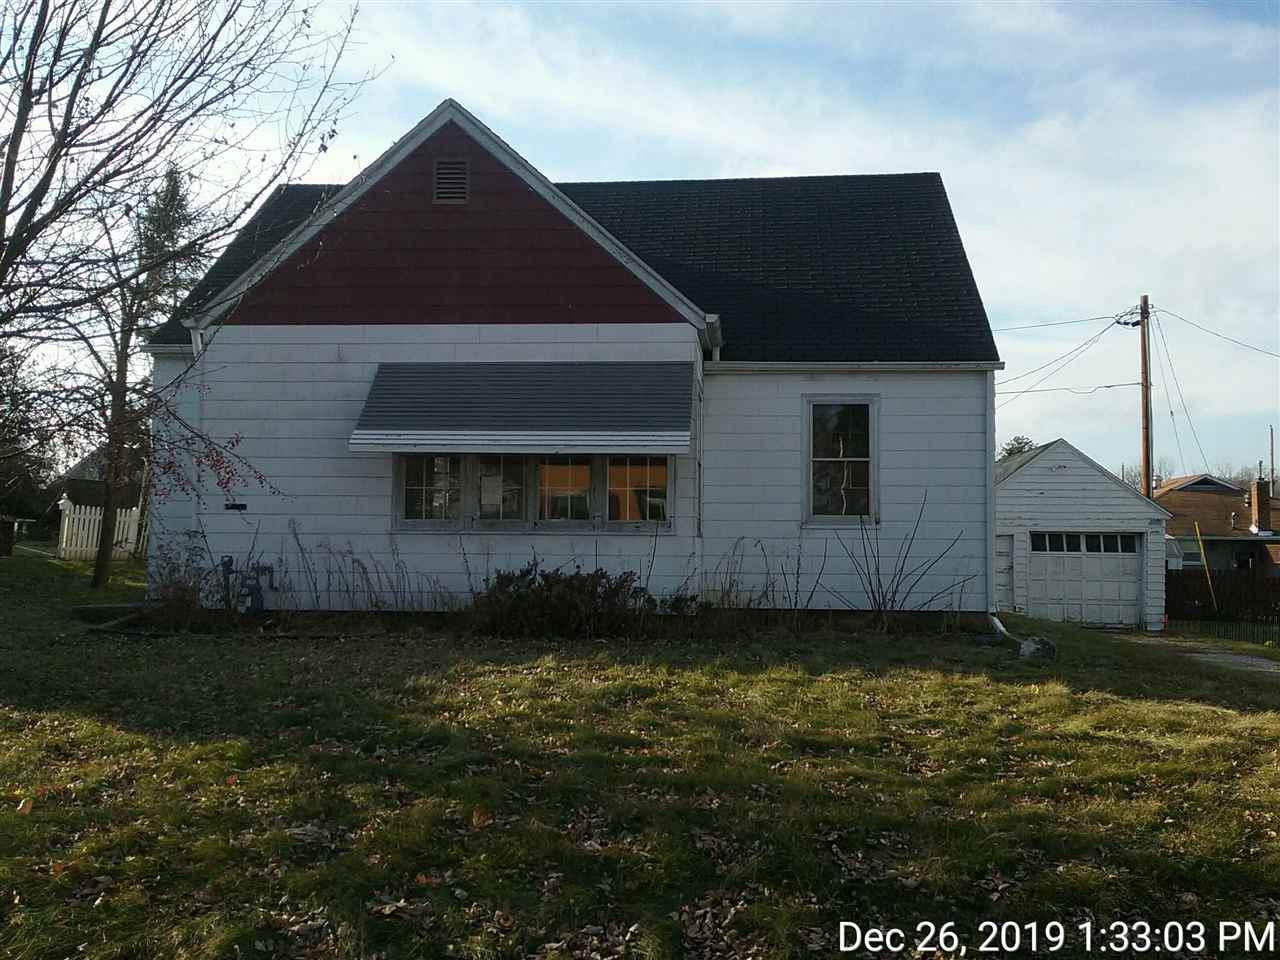 Cute two bedroom, one bath home.  Some wood floors, expandable attic for additional living space. Great location close to schools and downtown.  Property is winterized, furnace is not working and property cannot be dewinterized for inspections or appraisals.  Asphalt siding.